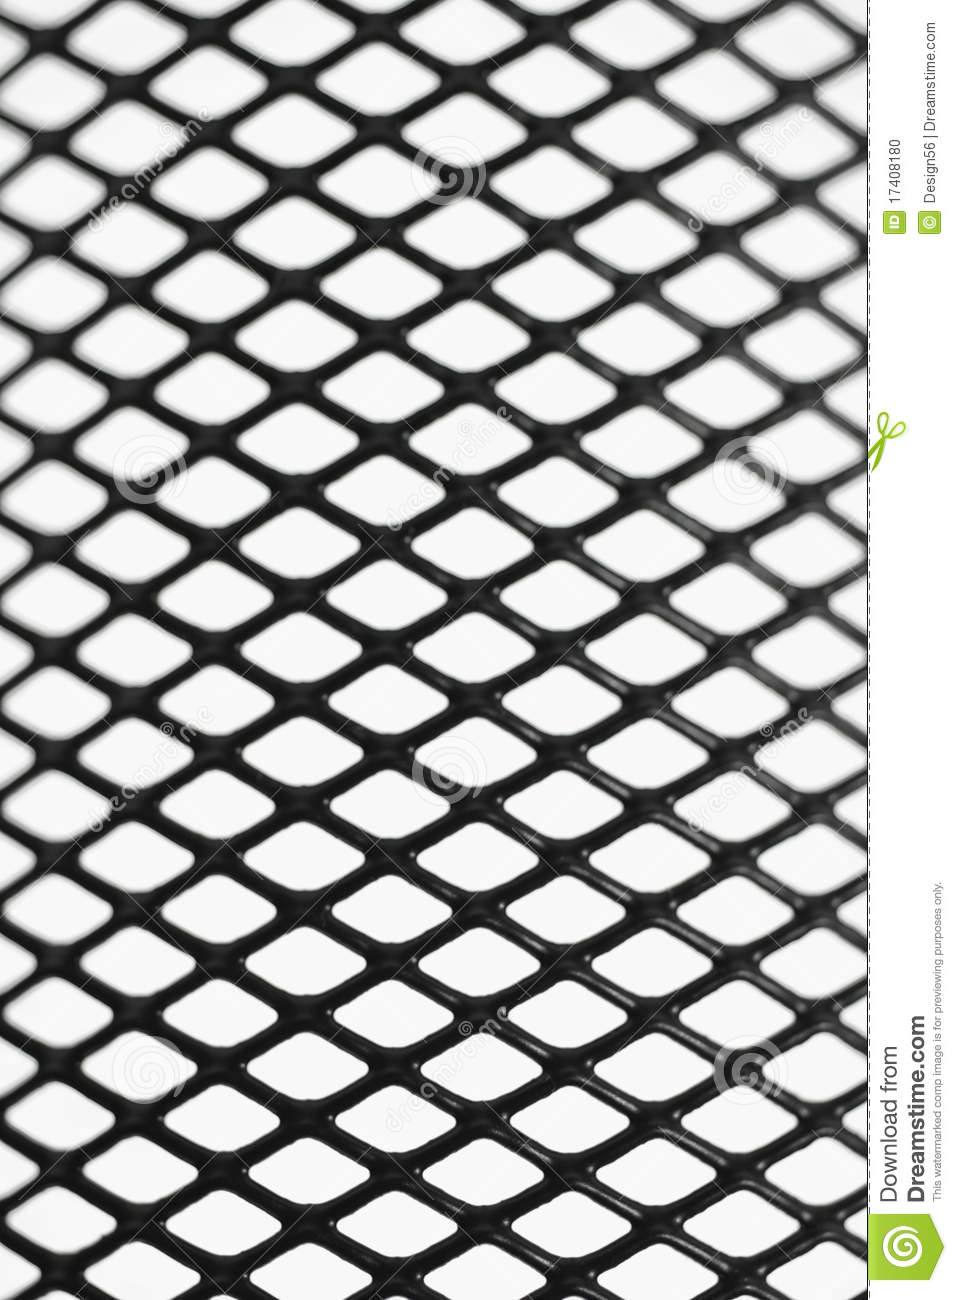 Black Wire Cloth : Black wire mesh pattern stock photo image of shape